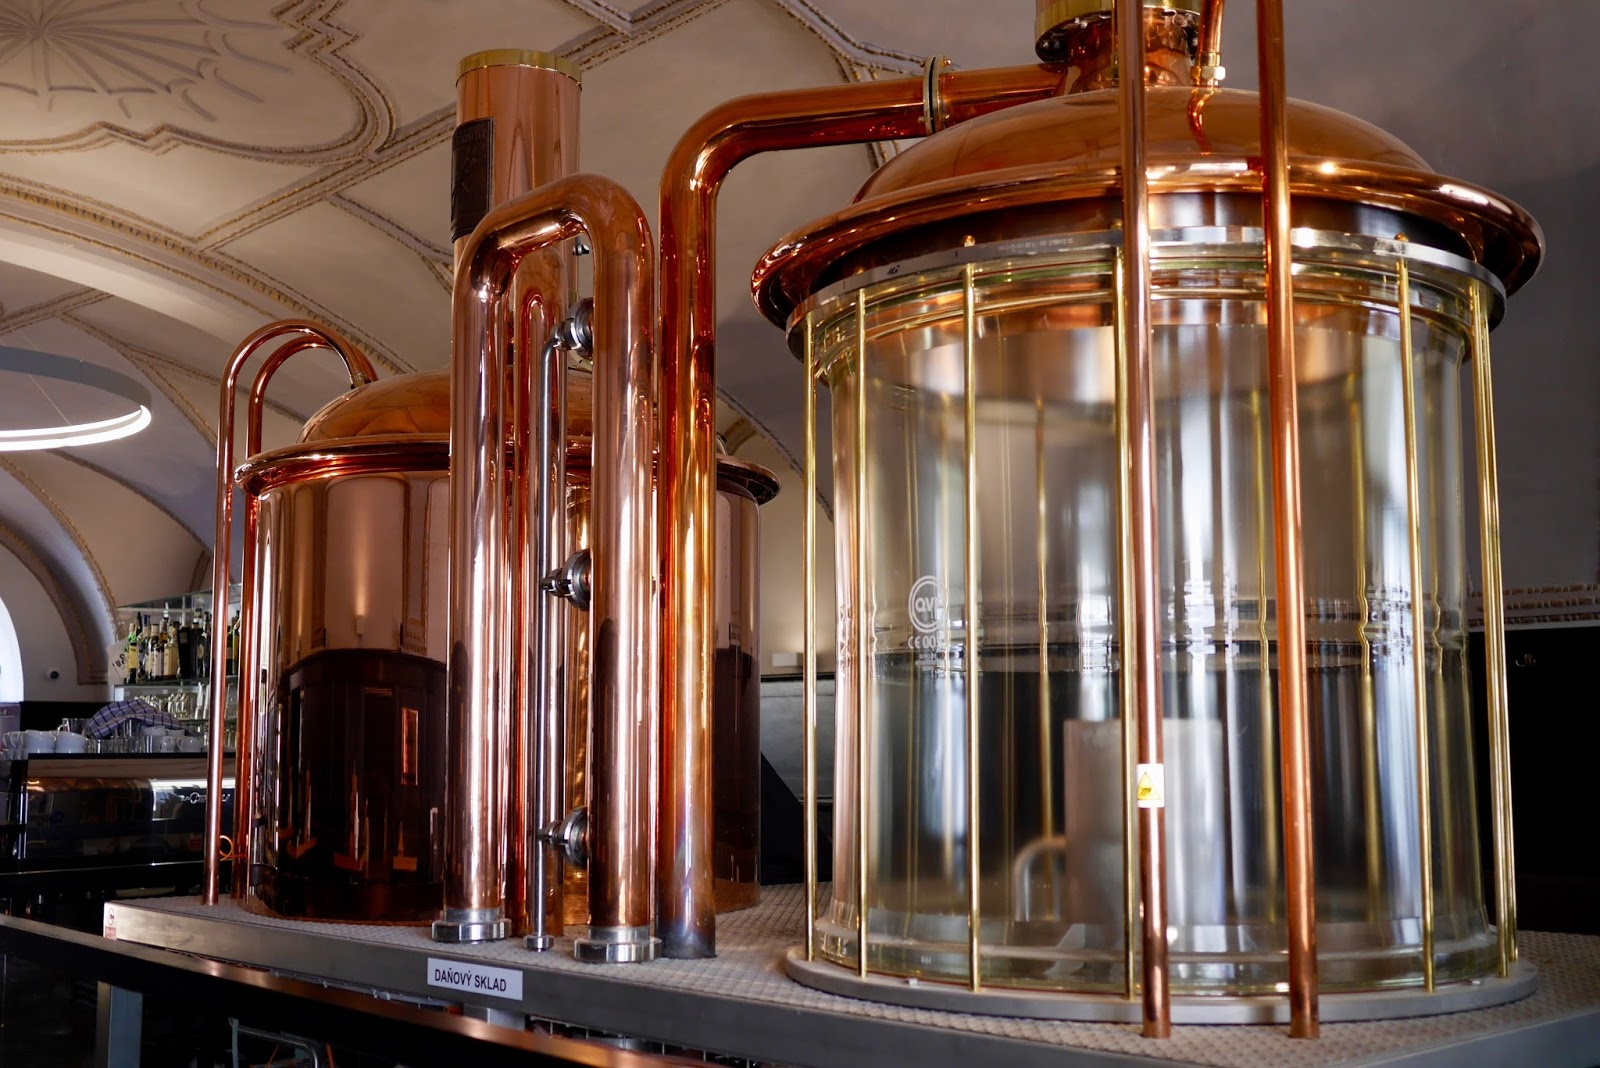 Copper stills of Prague beer during a beer tasting walking tour